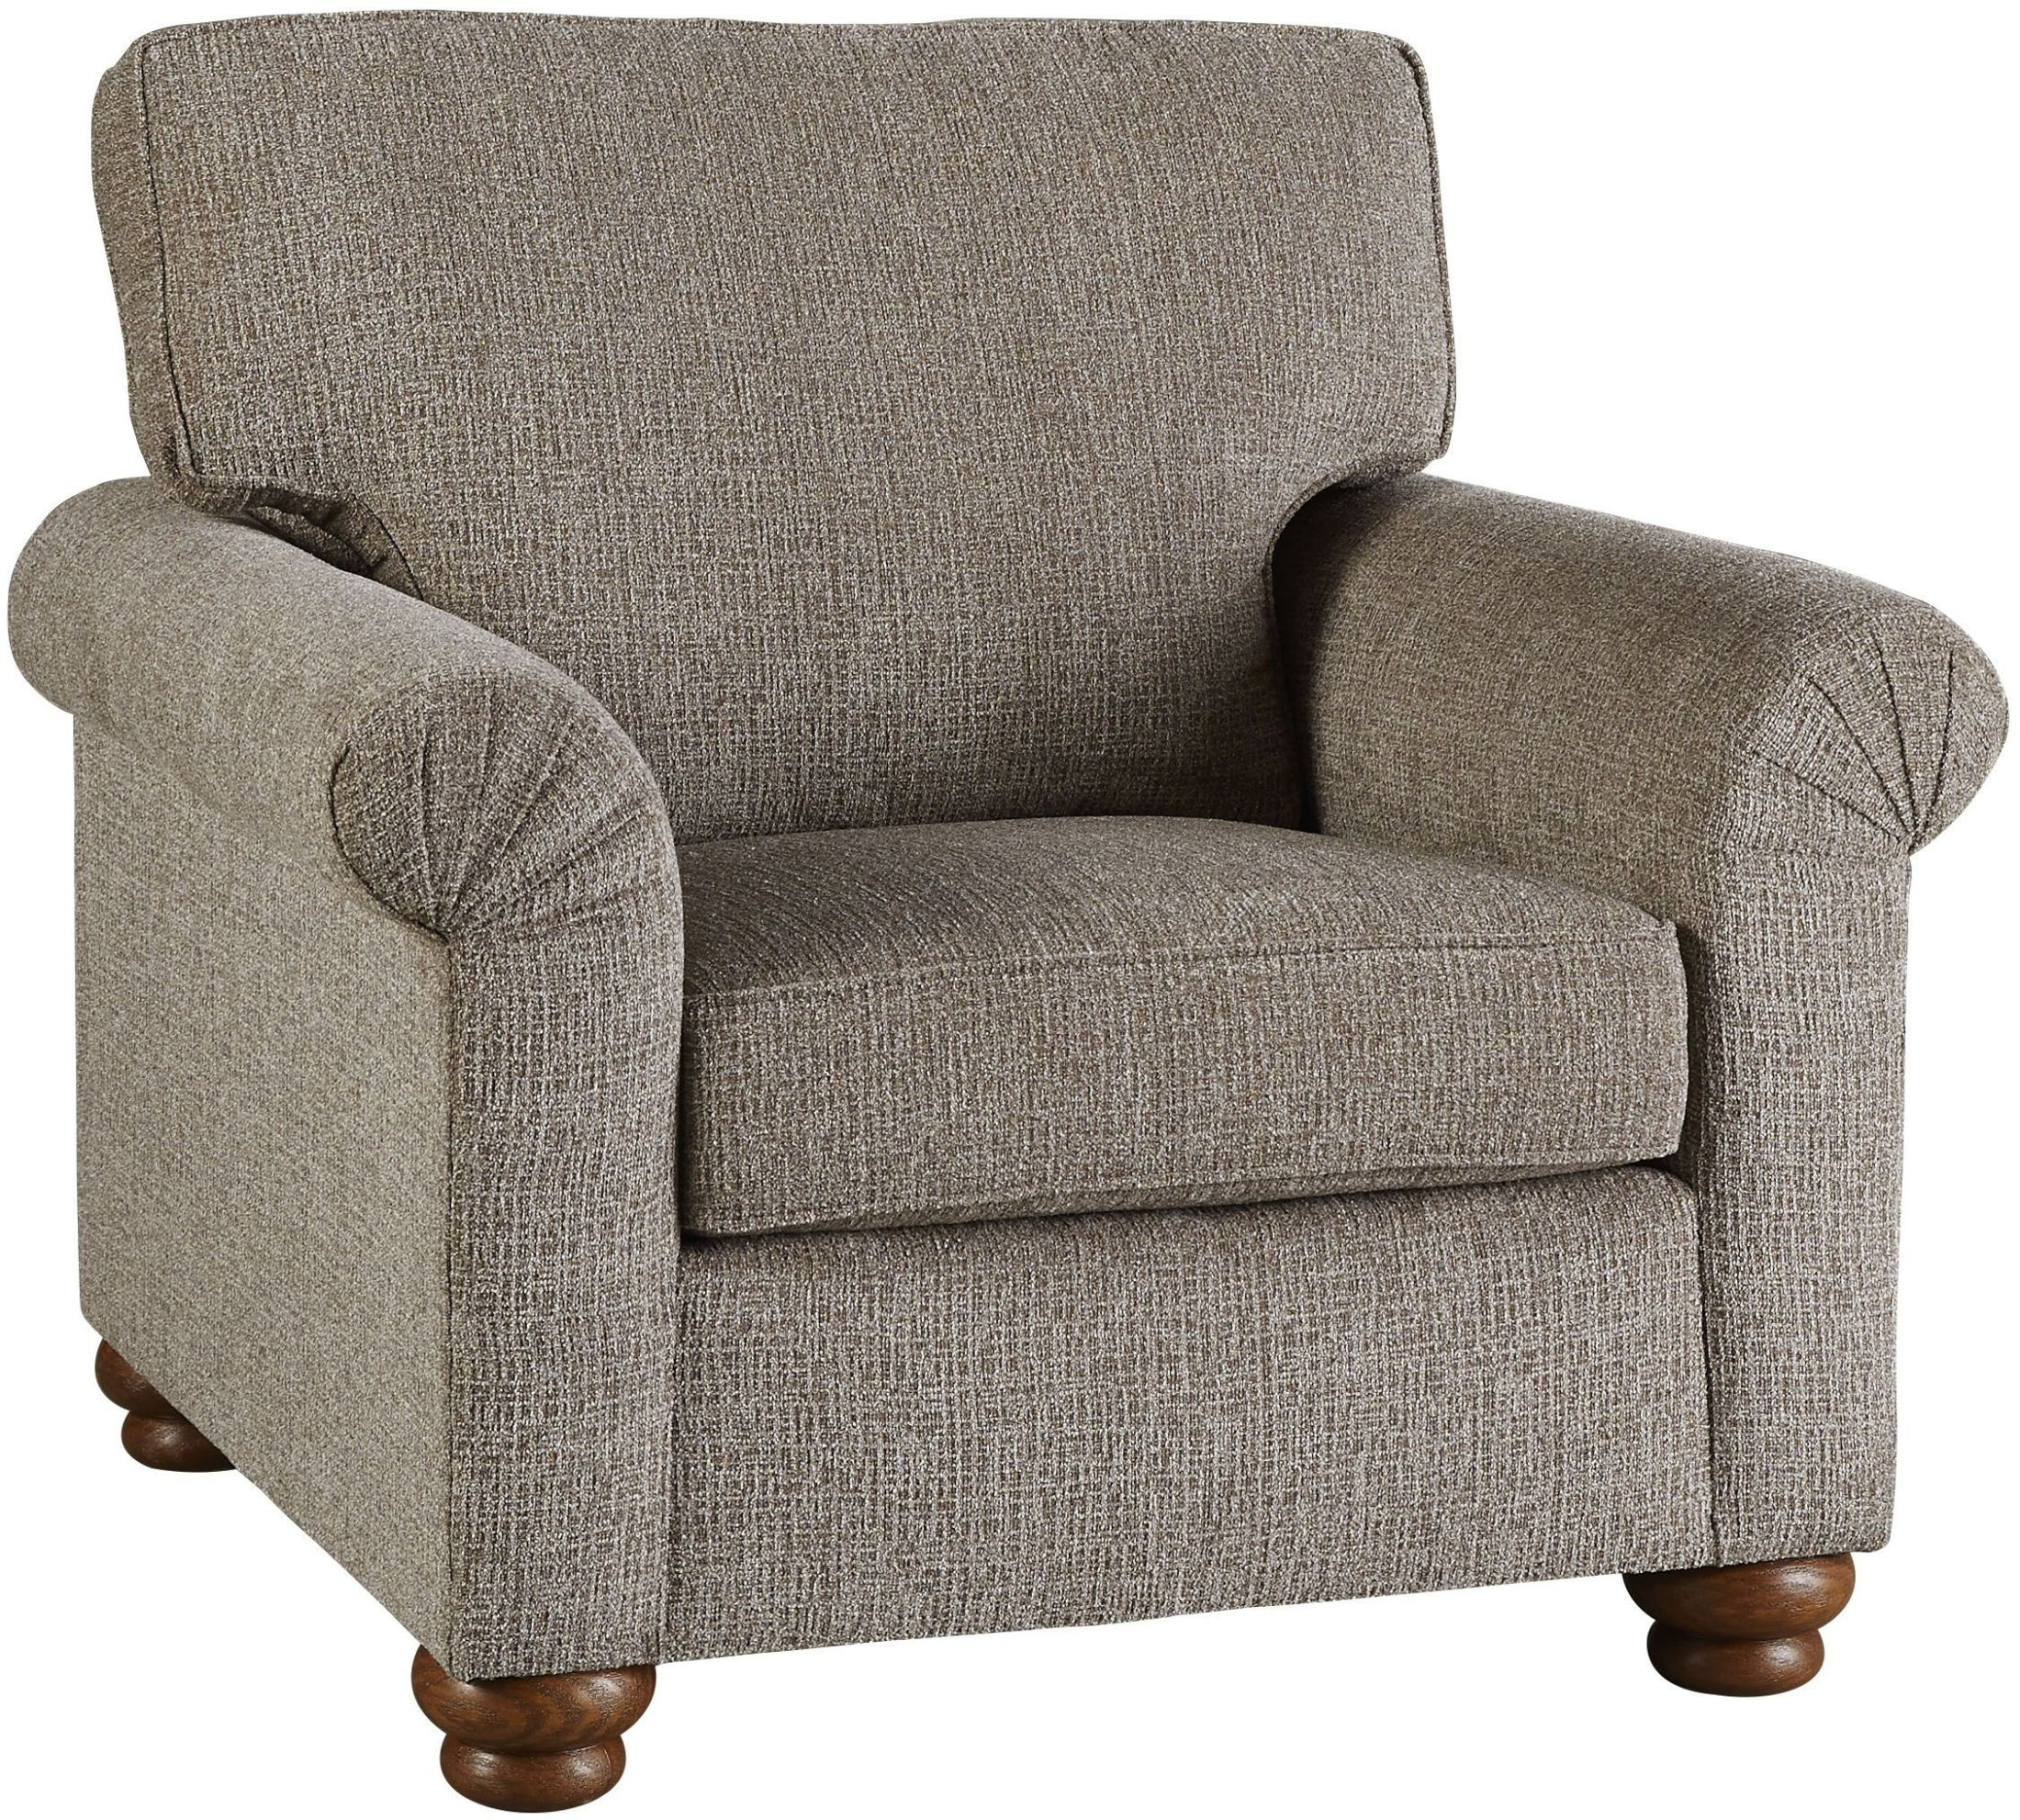 pewter chair used aeron size c aubrey from progressive furniture coleman